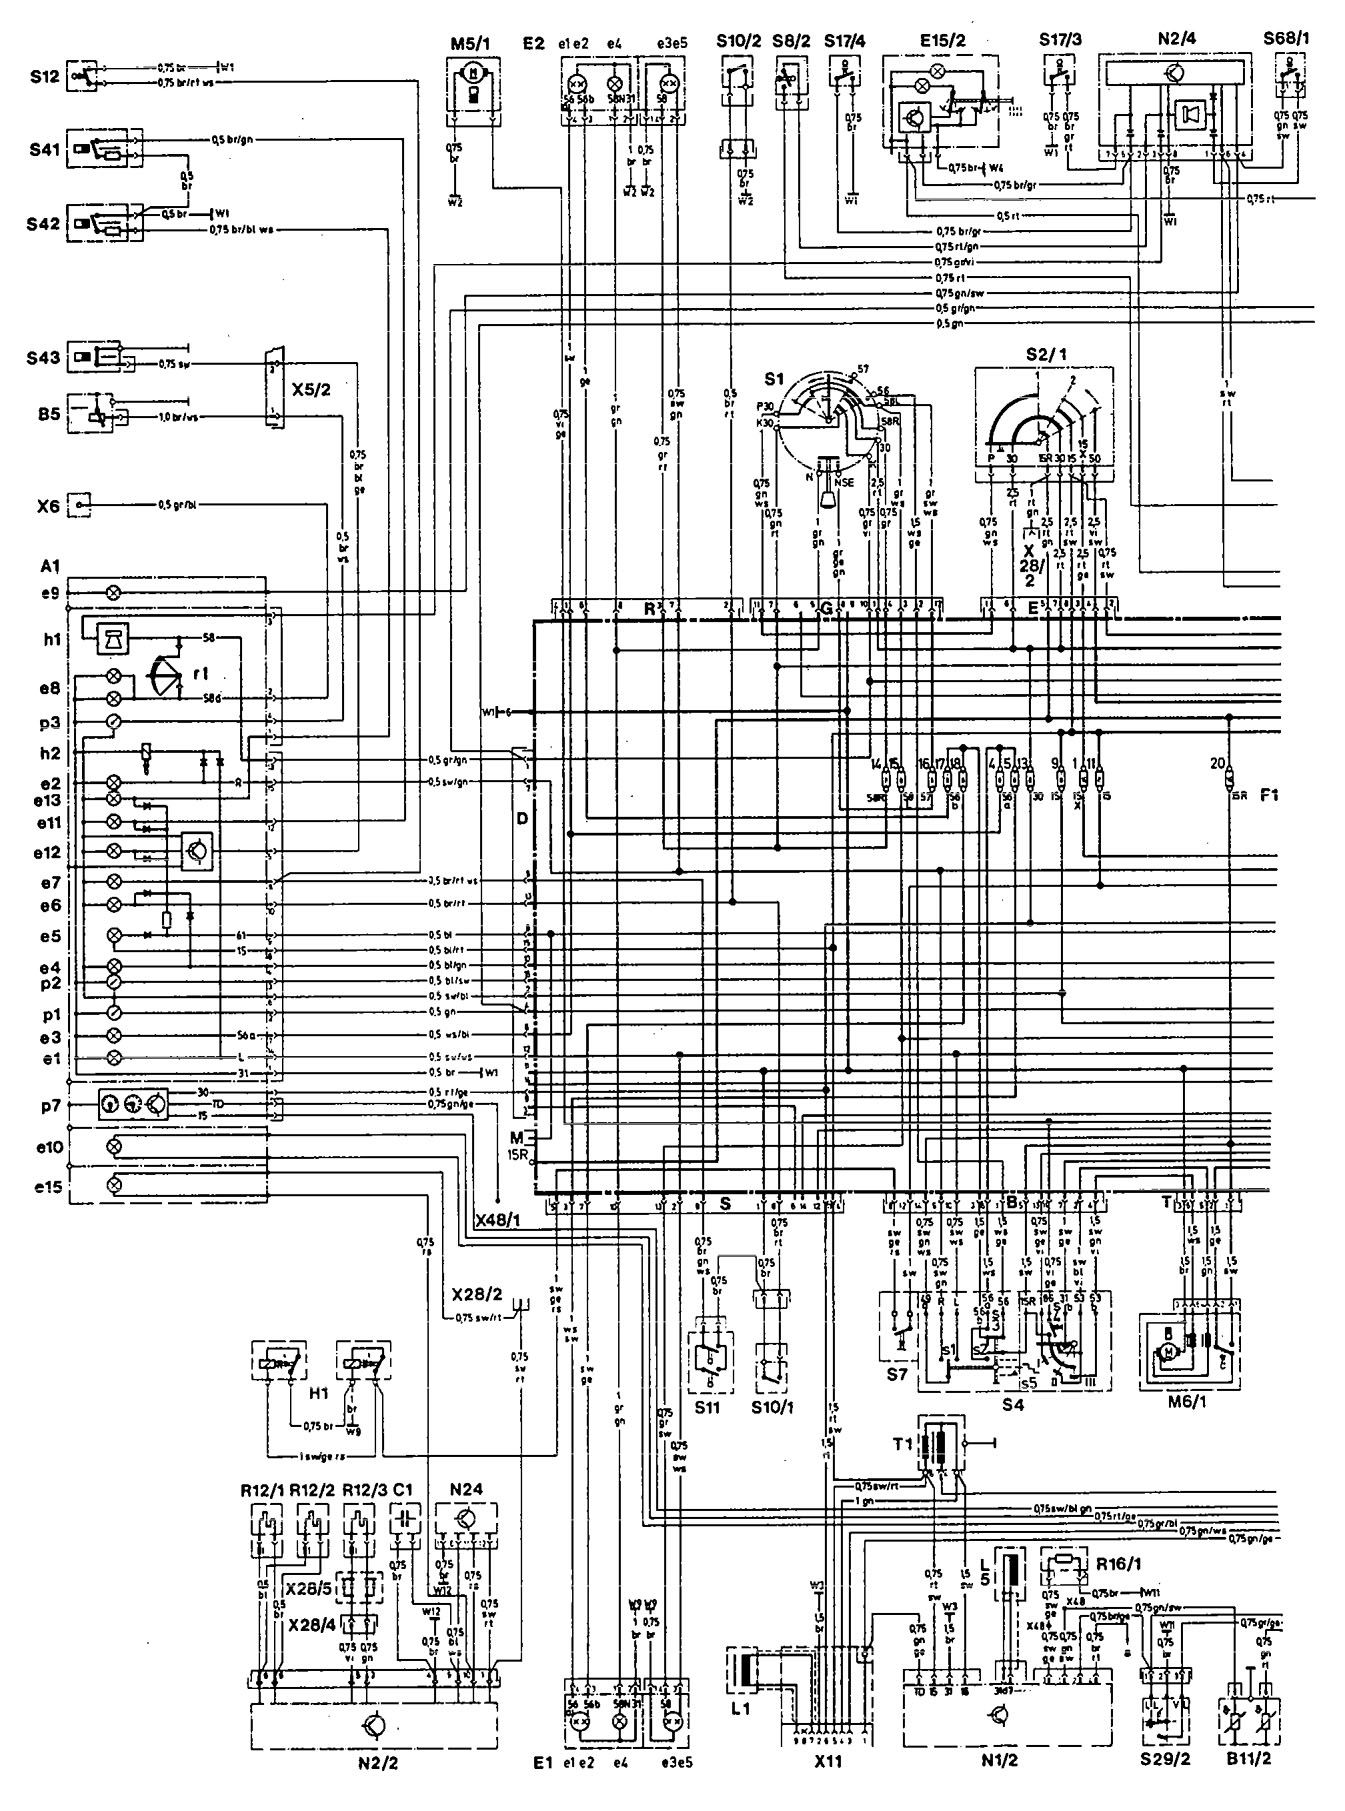 Mercedes Benz 190e  1993  - Wiring Diagrams - Starting